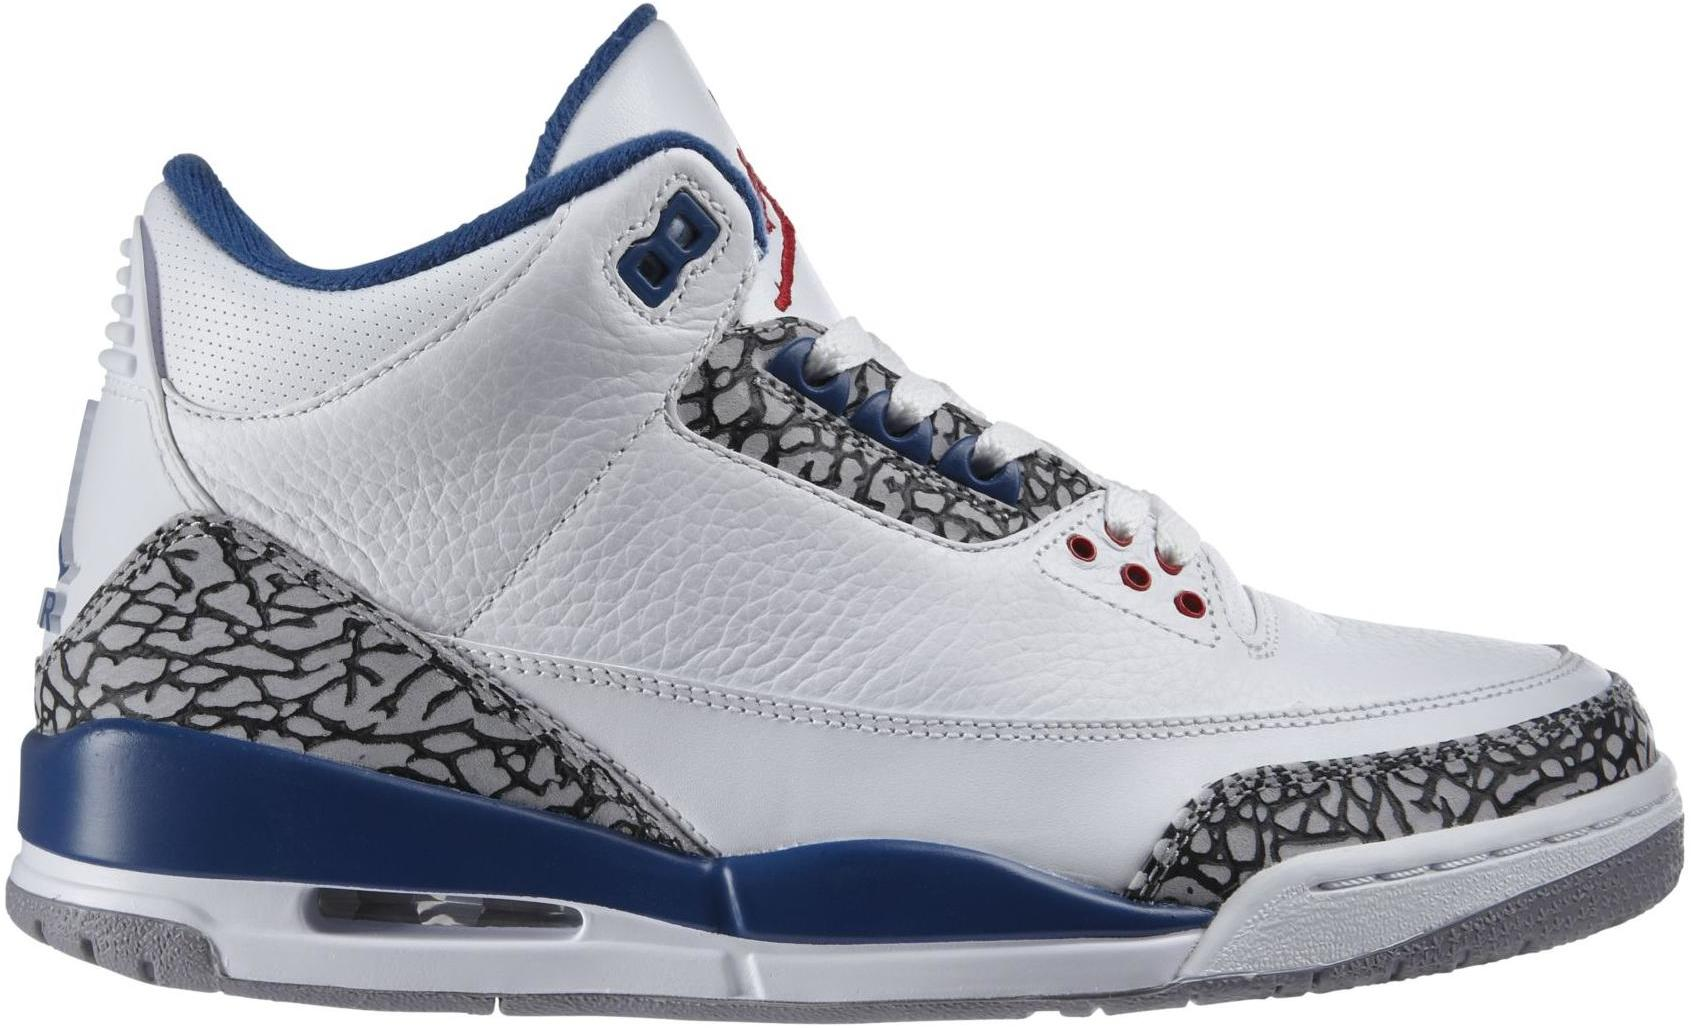 bb8a1d3f0ccc20 coupon code true blue air jordan 94834 937a6  ireland jordan 3 retro true  blue 2009 a2994 68d6a